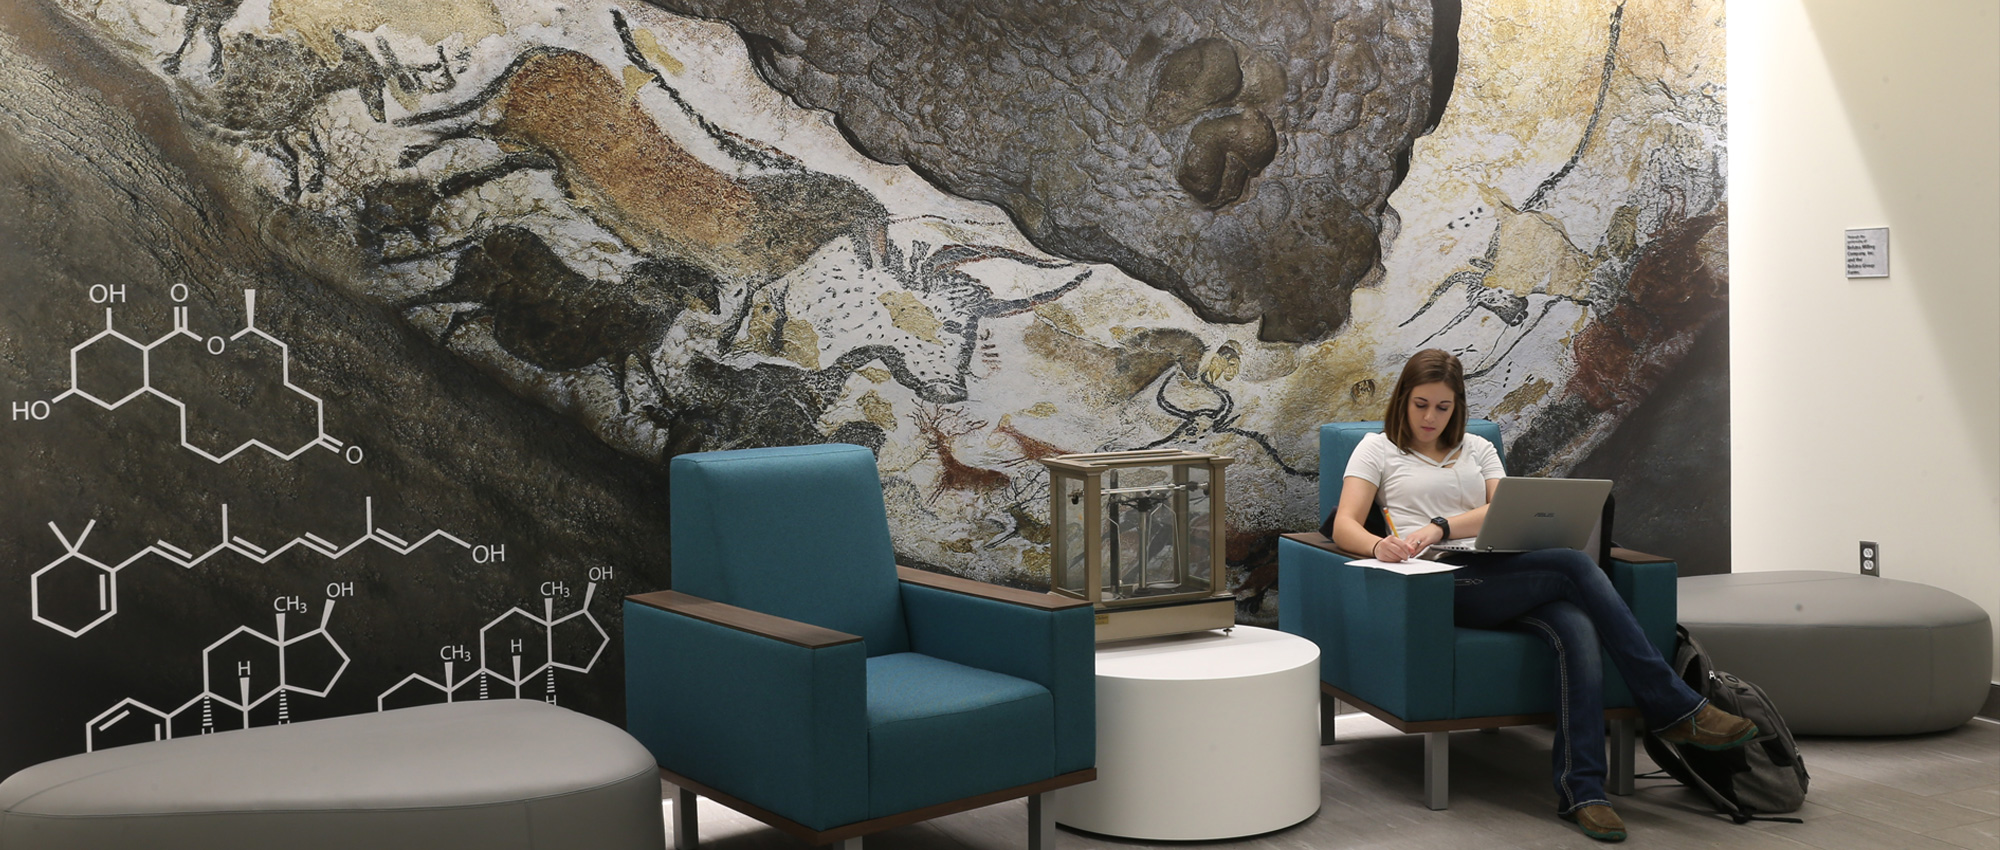 A woman sits in front of a cave painting style mural in the Hobart and Russell Creighton Hall of Animal Sciences and Land O'Lakes, Inc. Center for Experiential Learning